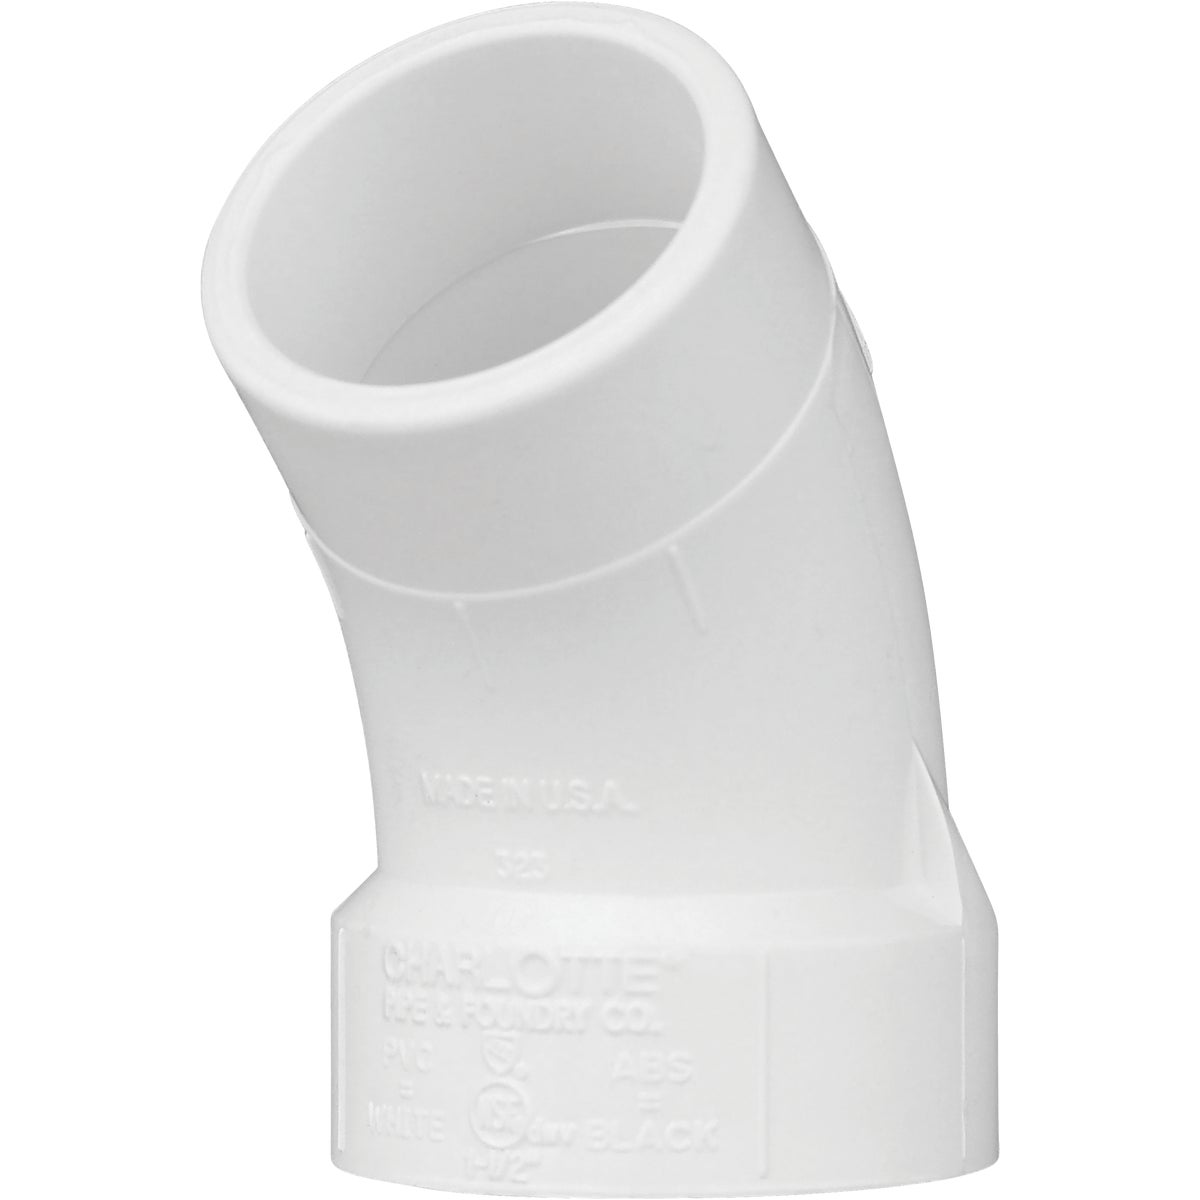 "1-1/2""45D SAN STRT ELBOW - 72716 by Genova Inc  Pvc Dwv"